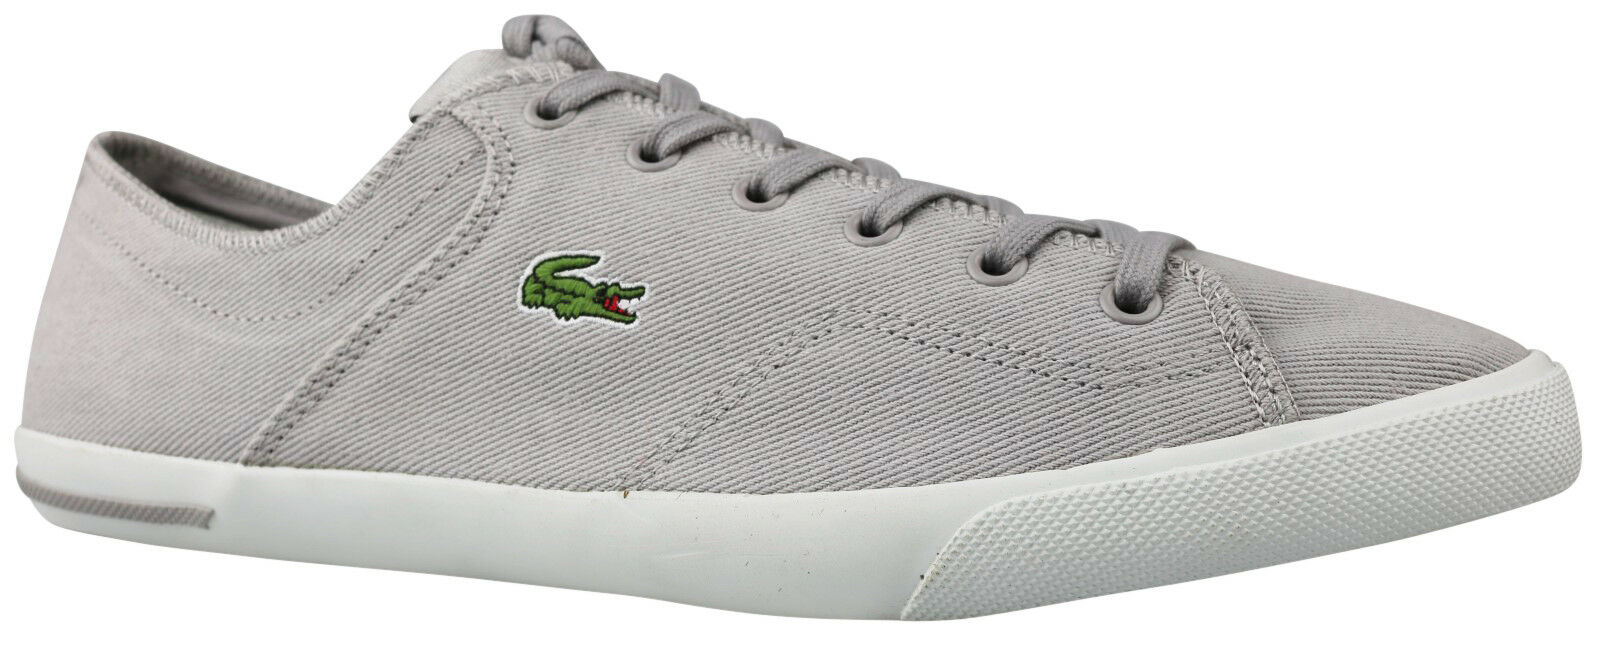 Lacoste Ramer AAO SPM Mens zapatos Trainers gris 7-27spm101712c Talla 46,5 NEW OVP